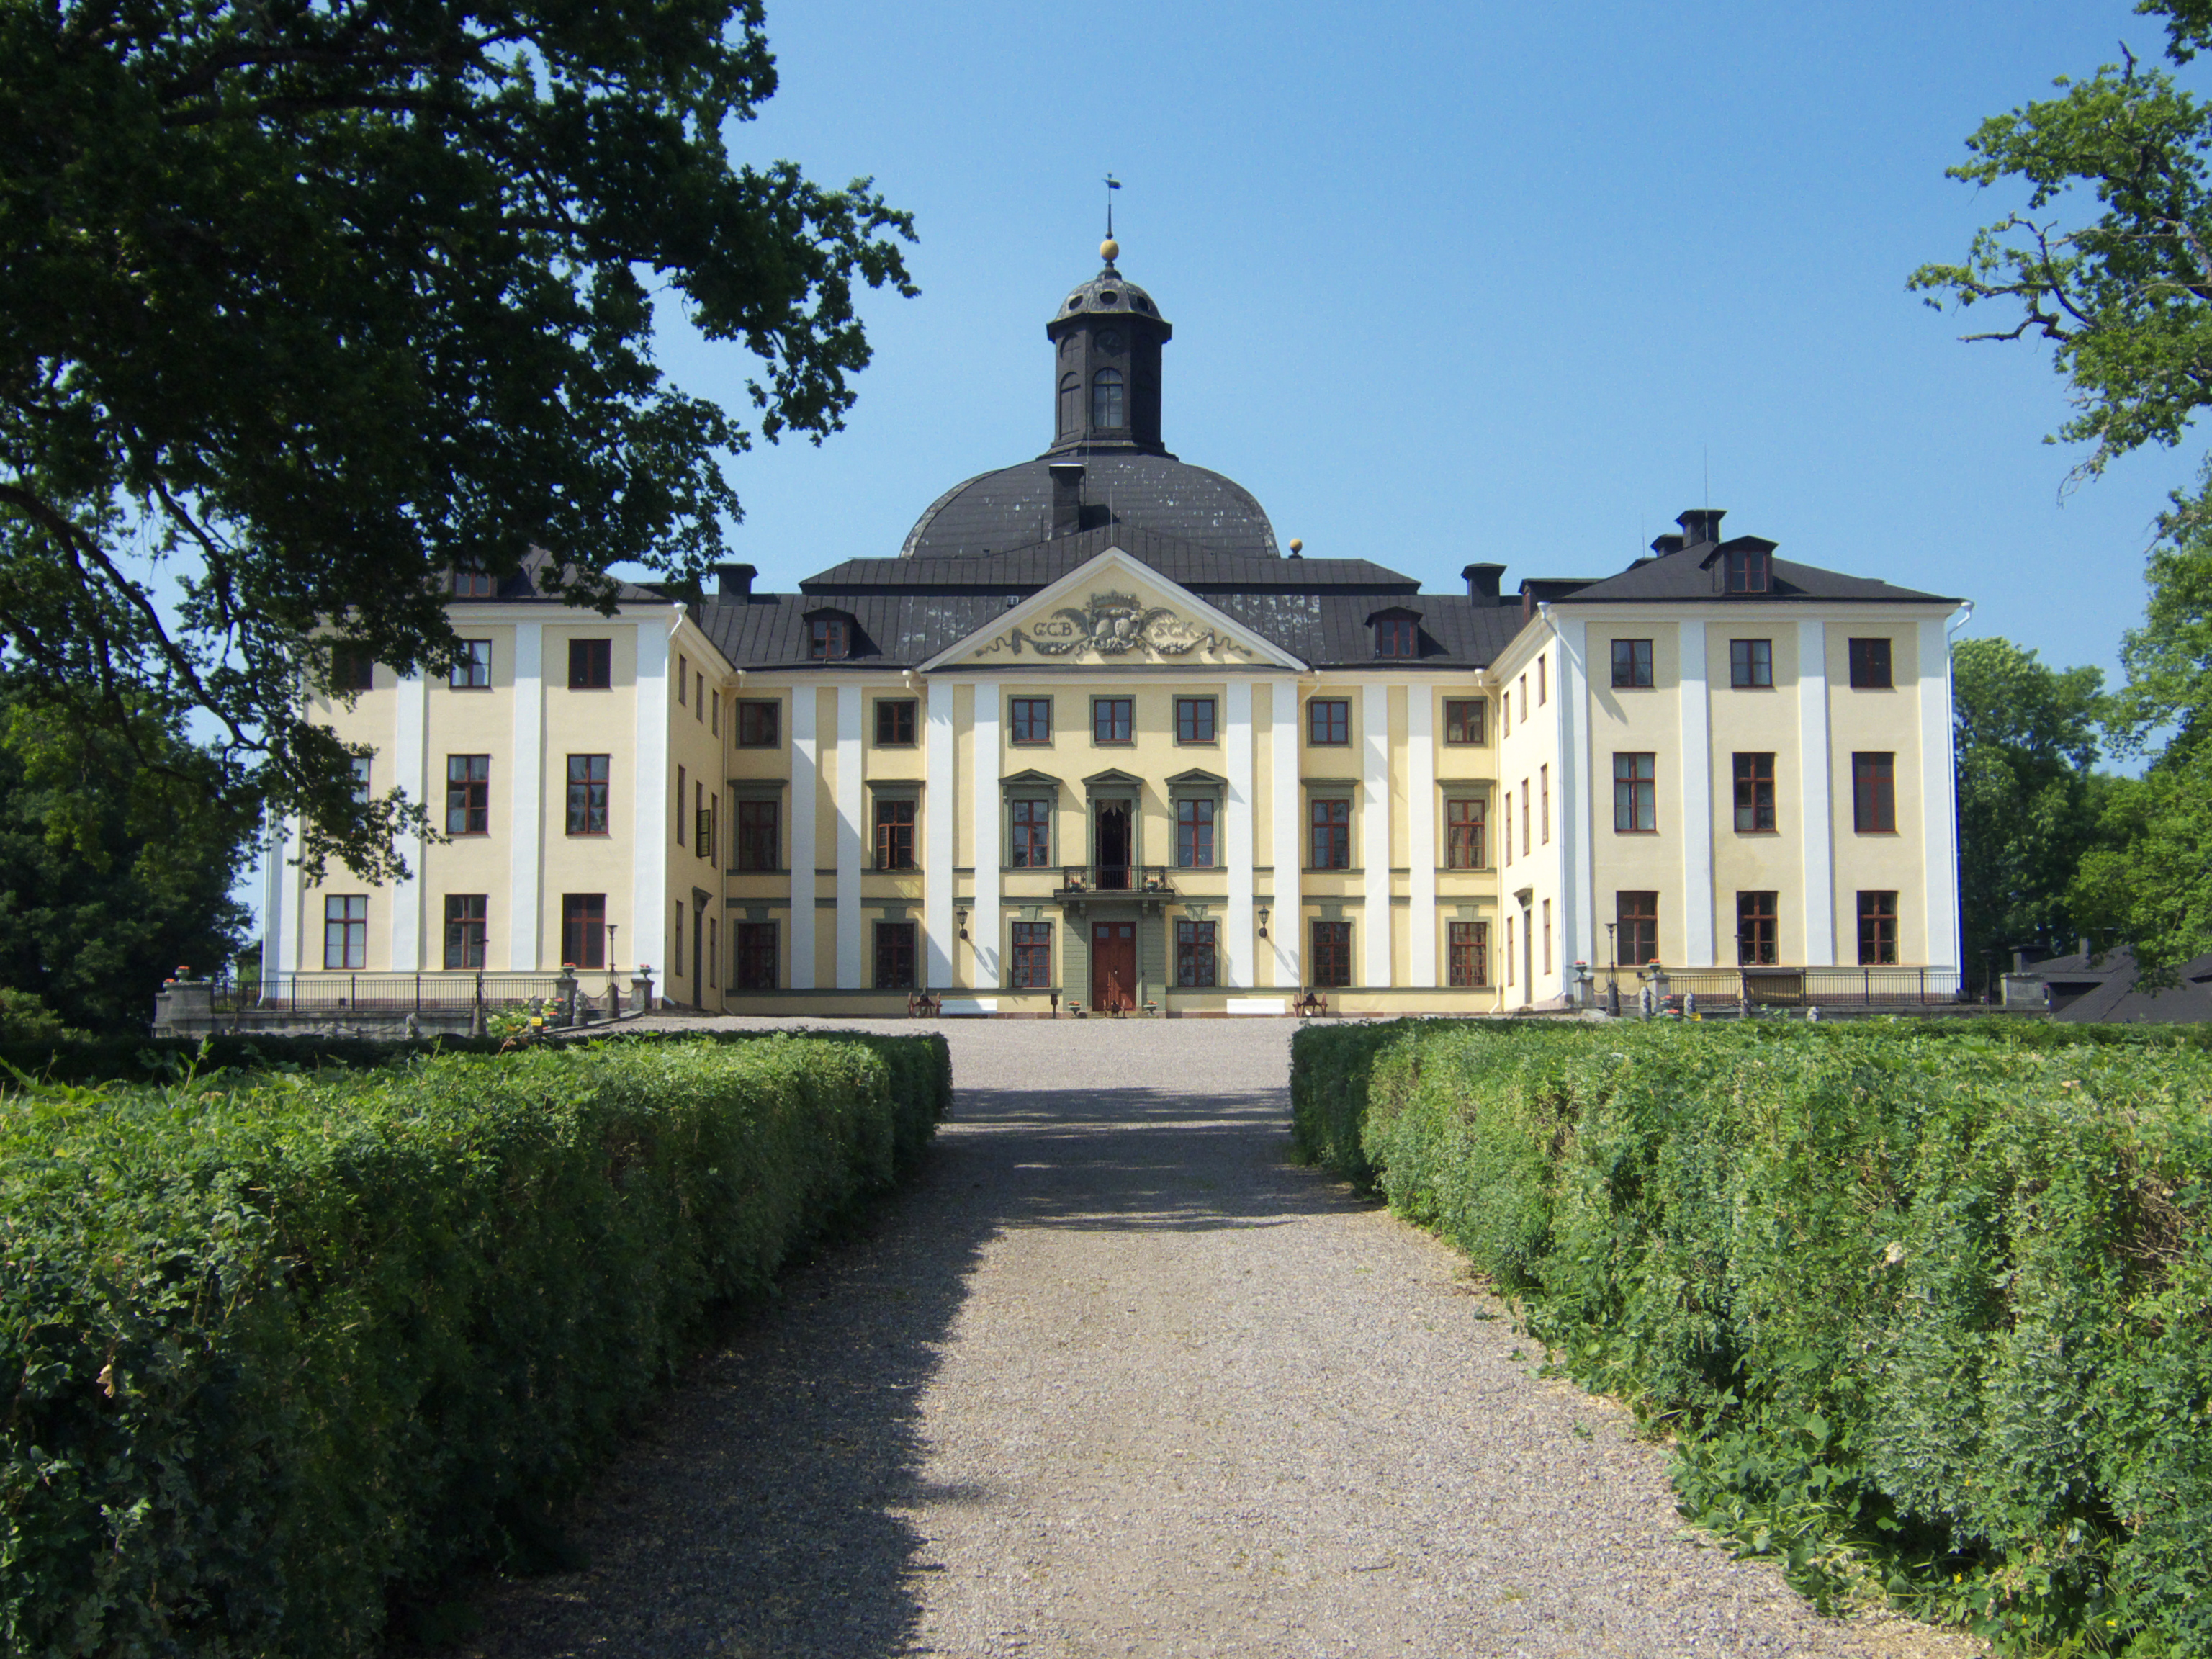 rbyhus Castle - On a Boat Productions